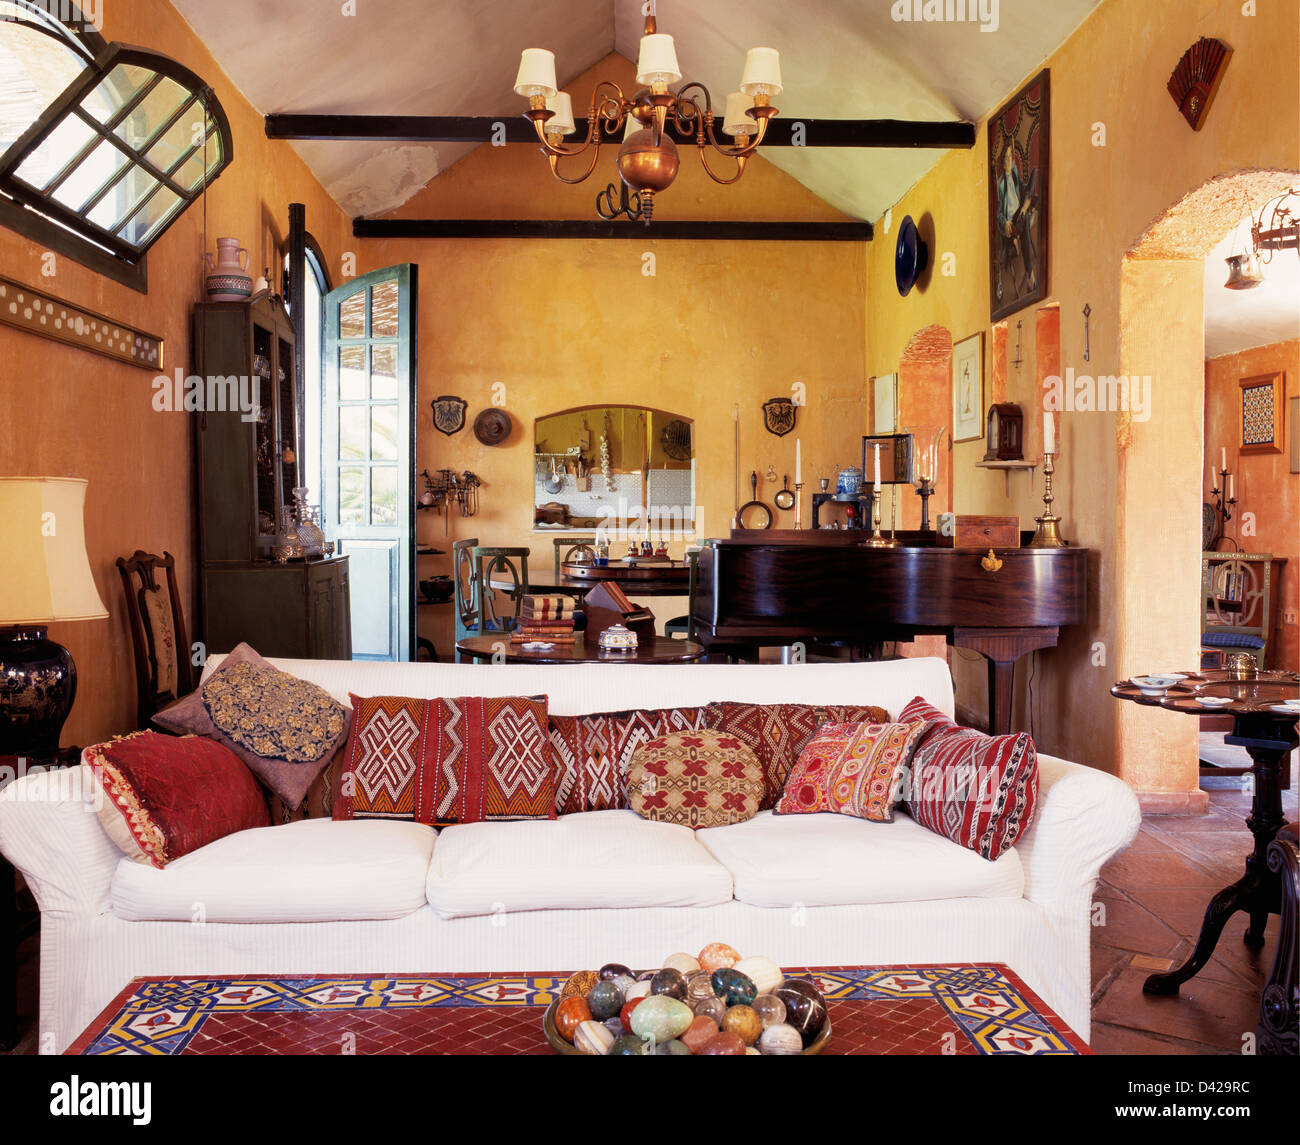 White Sofa With Patterned Cushions In Yellow Spanish Living Room With Stock Photo Royalty Free